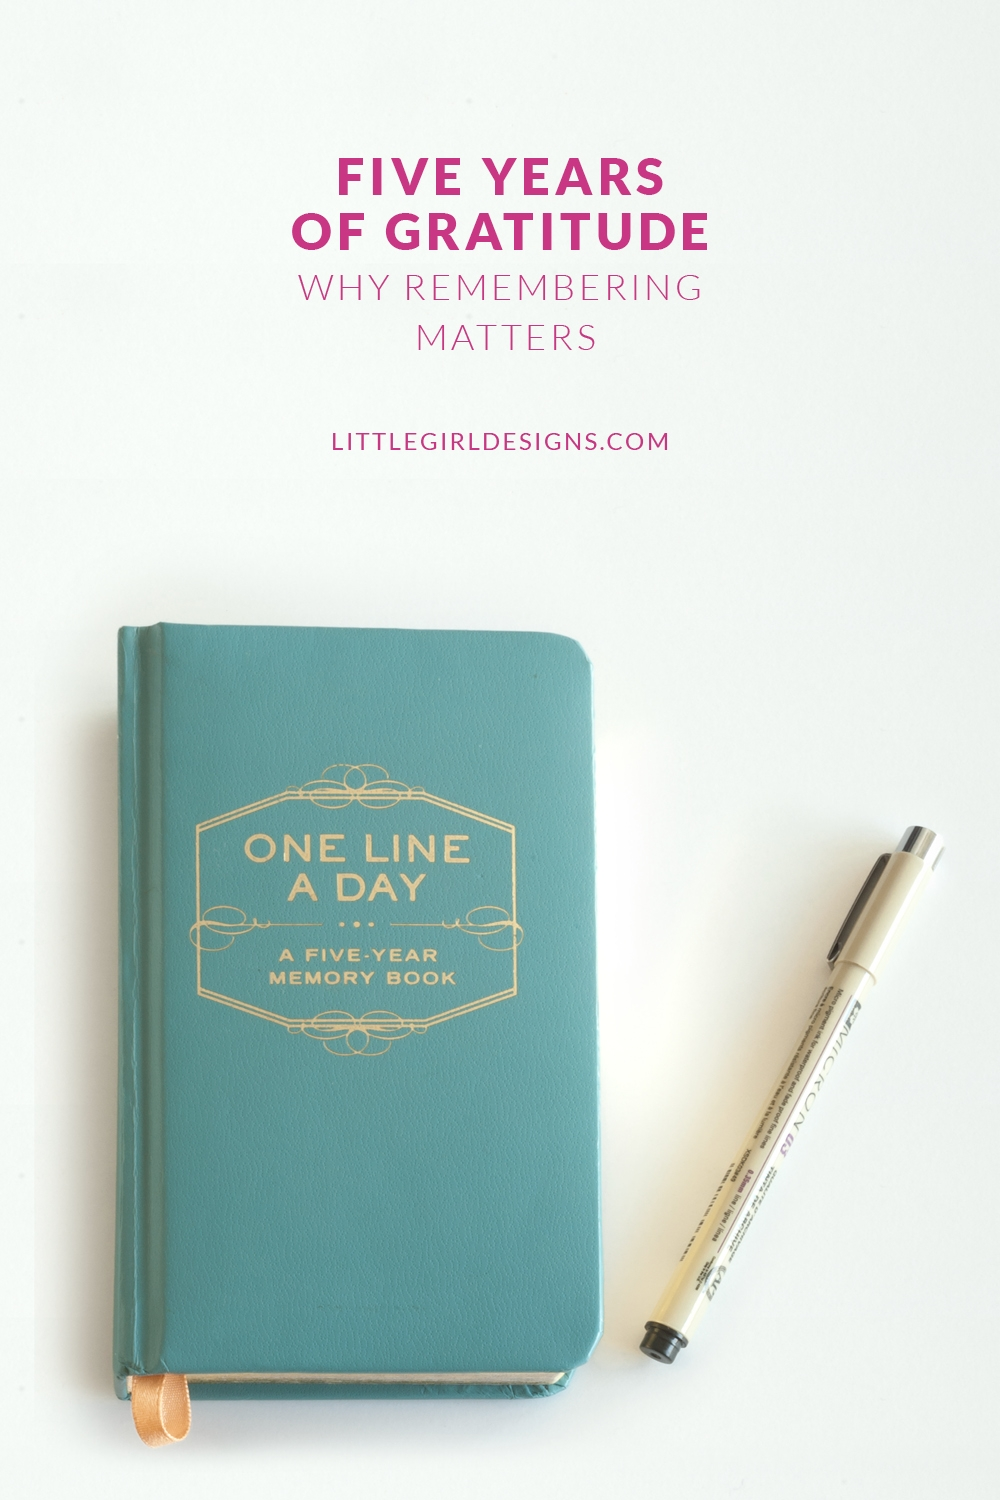 Five Years of Gratitude - Why Remembering is Important @littlegirldesigns.com